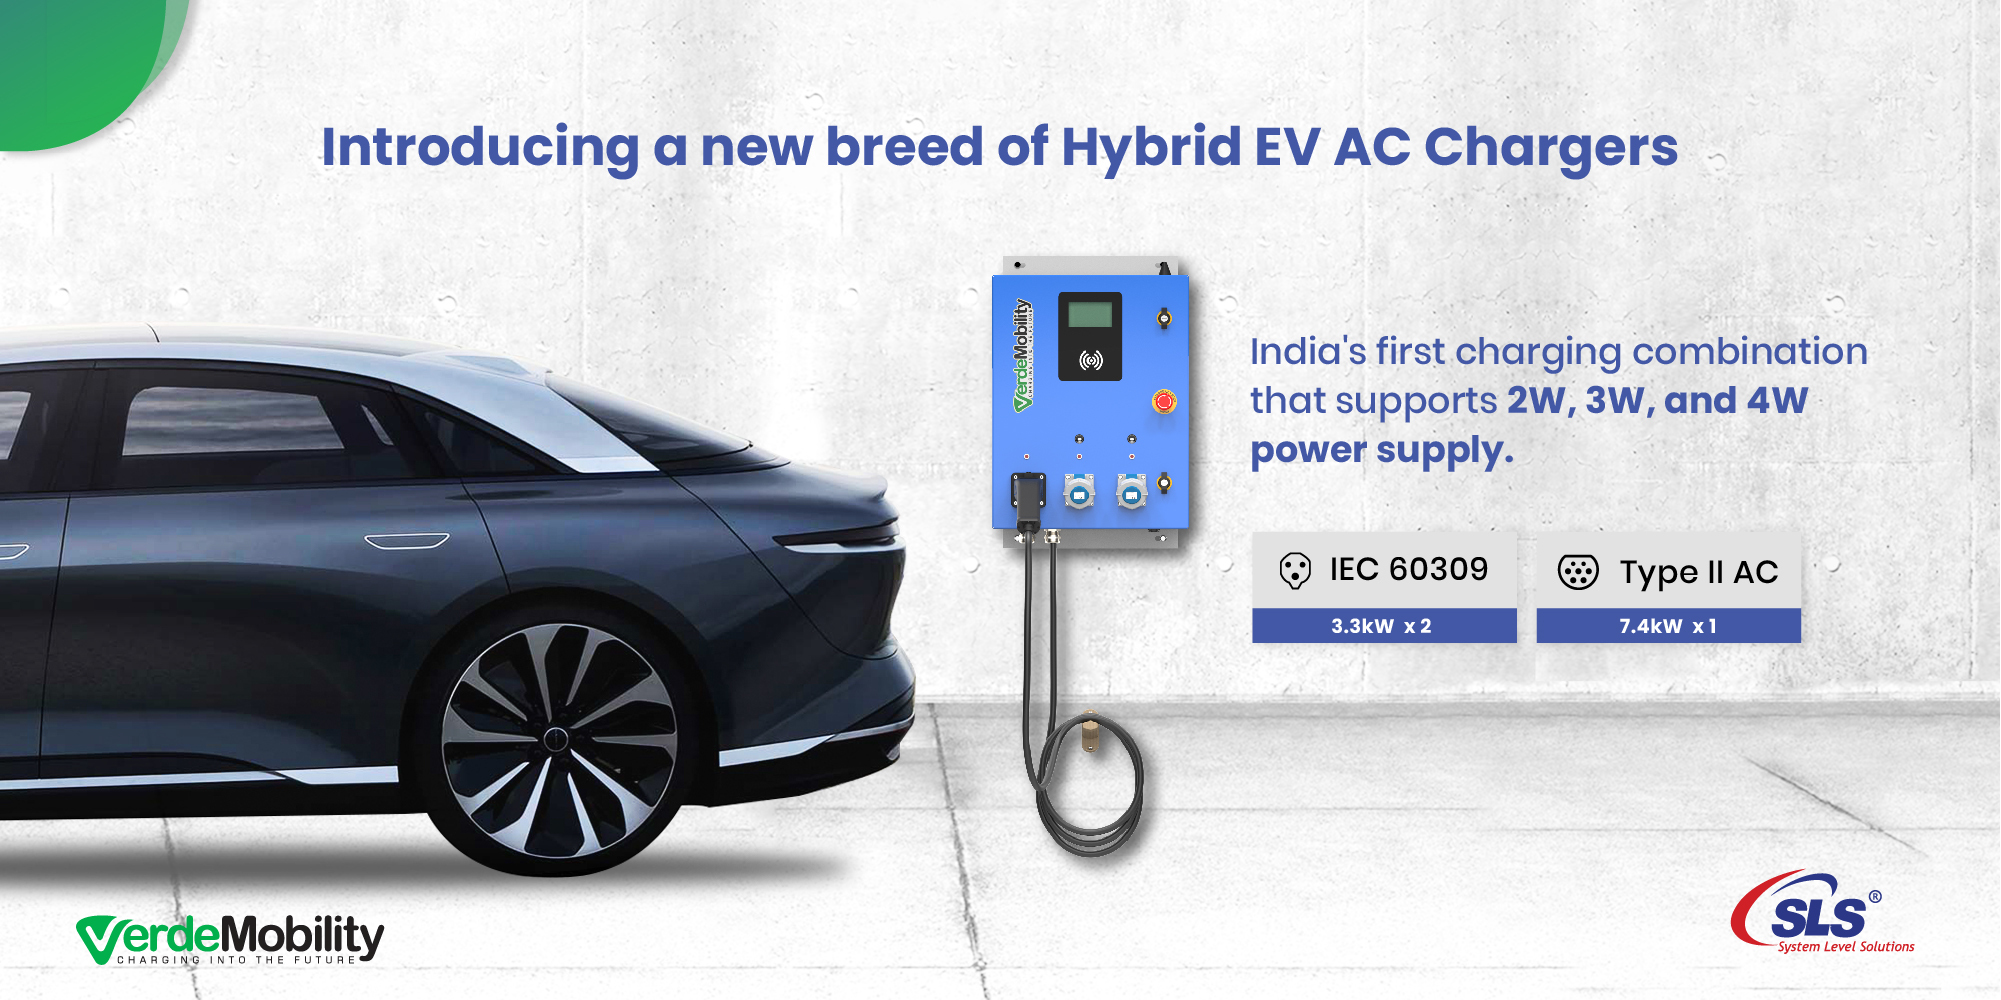 VerdeMobility Launches the First Ever Hybrid AC EV Chargers in India For Multi-Protocol Charging